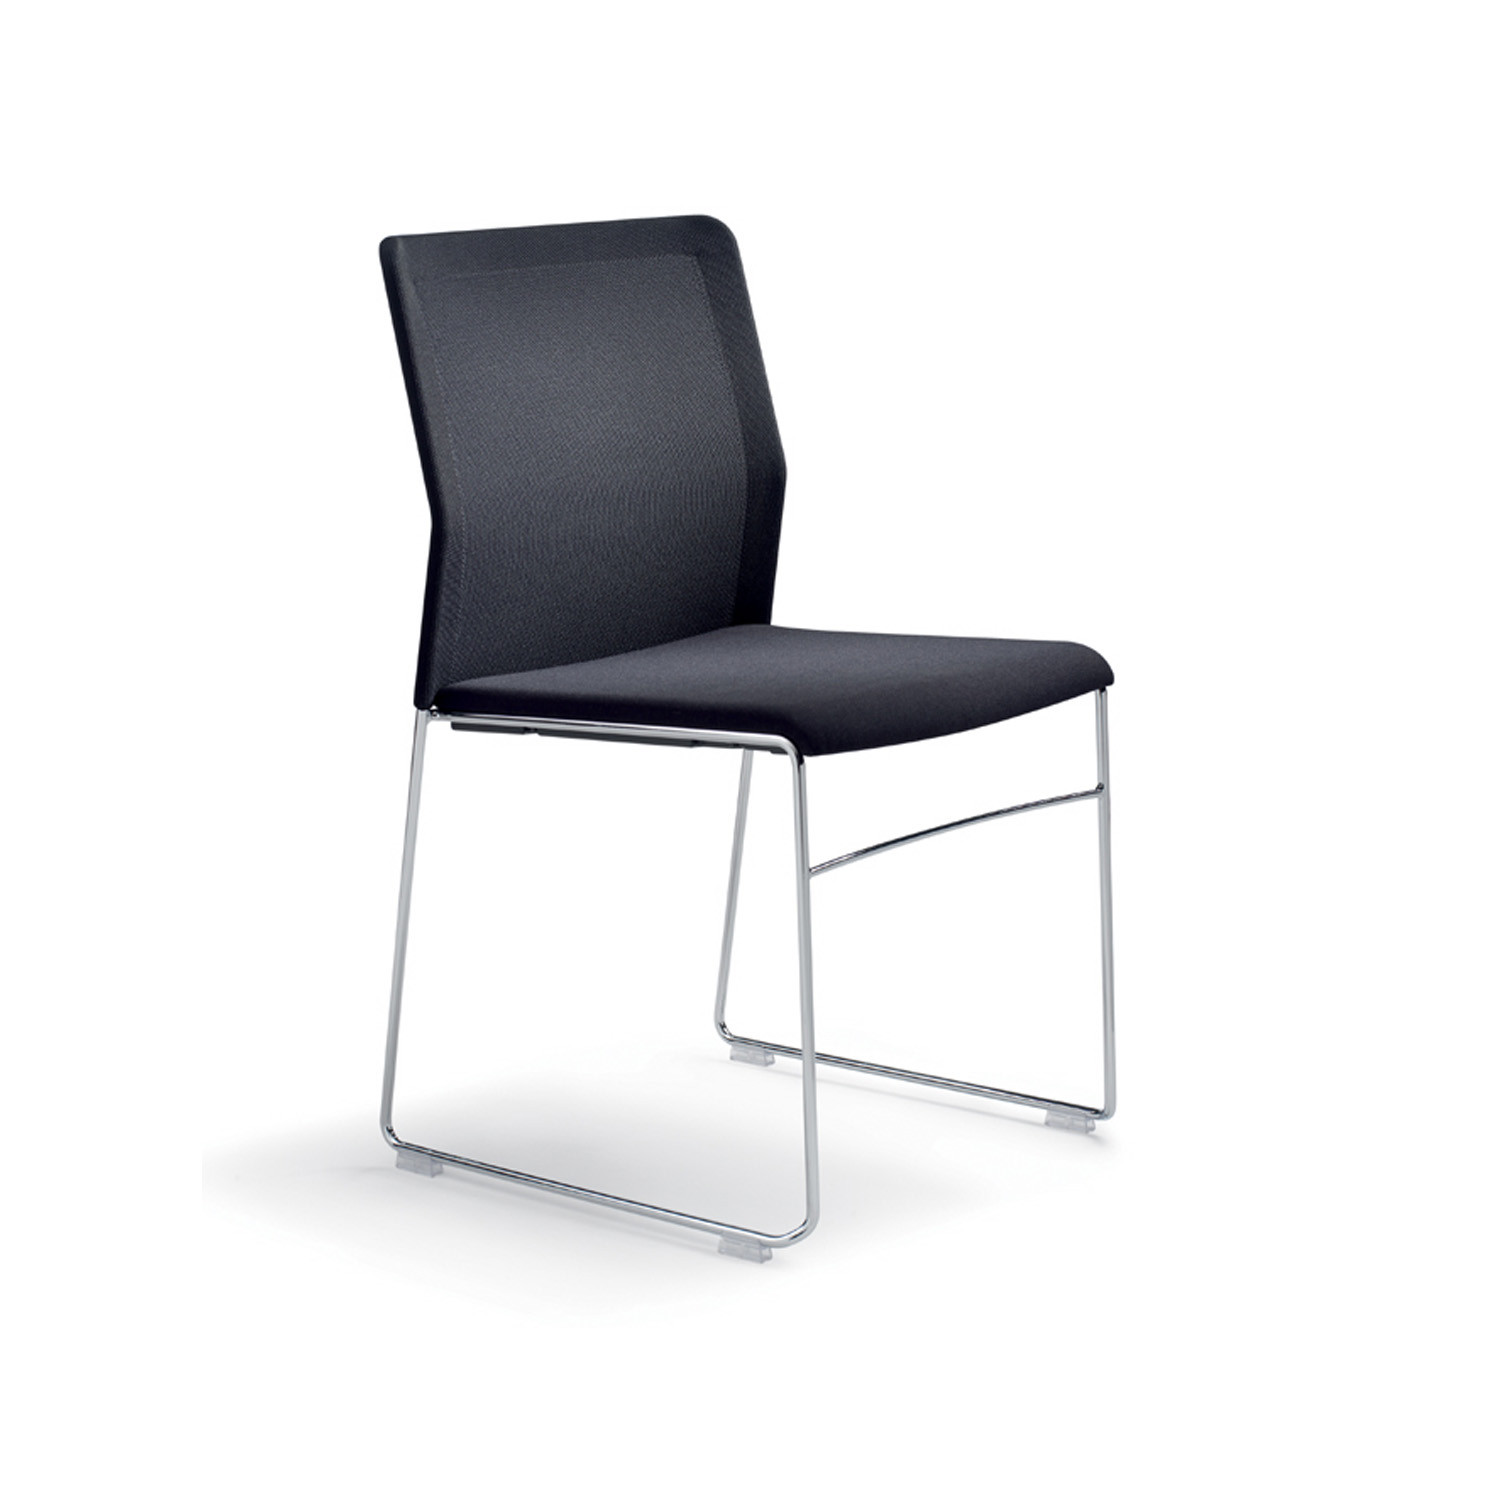 Outline Stacking Chair Upholstered